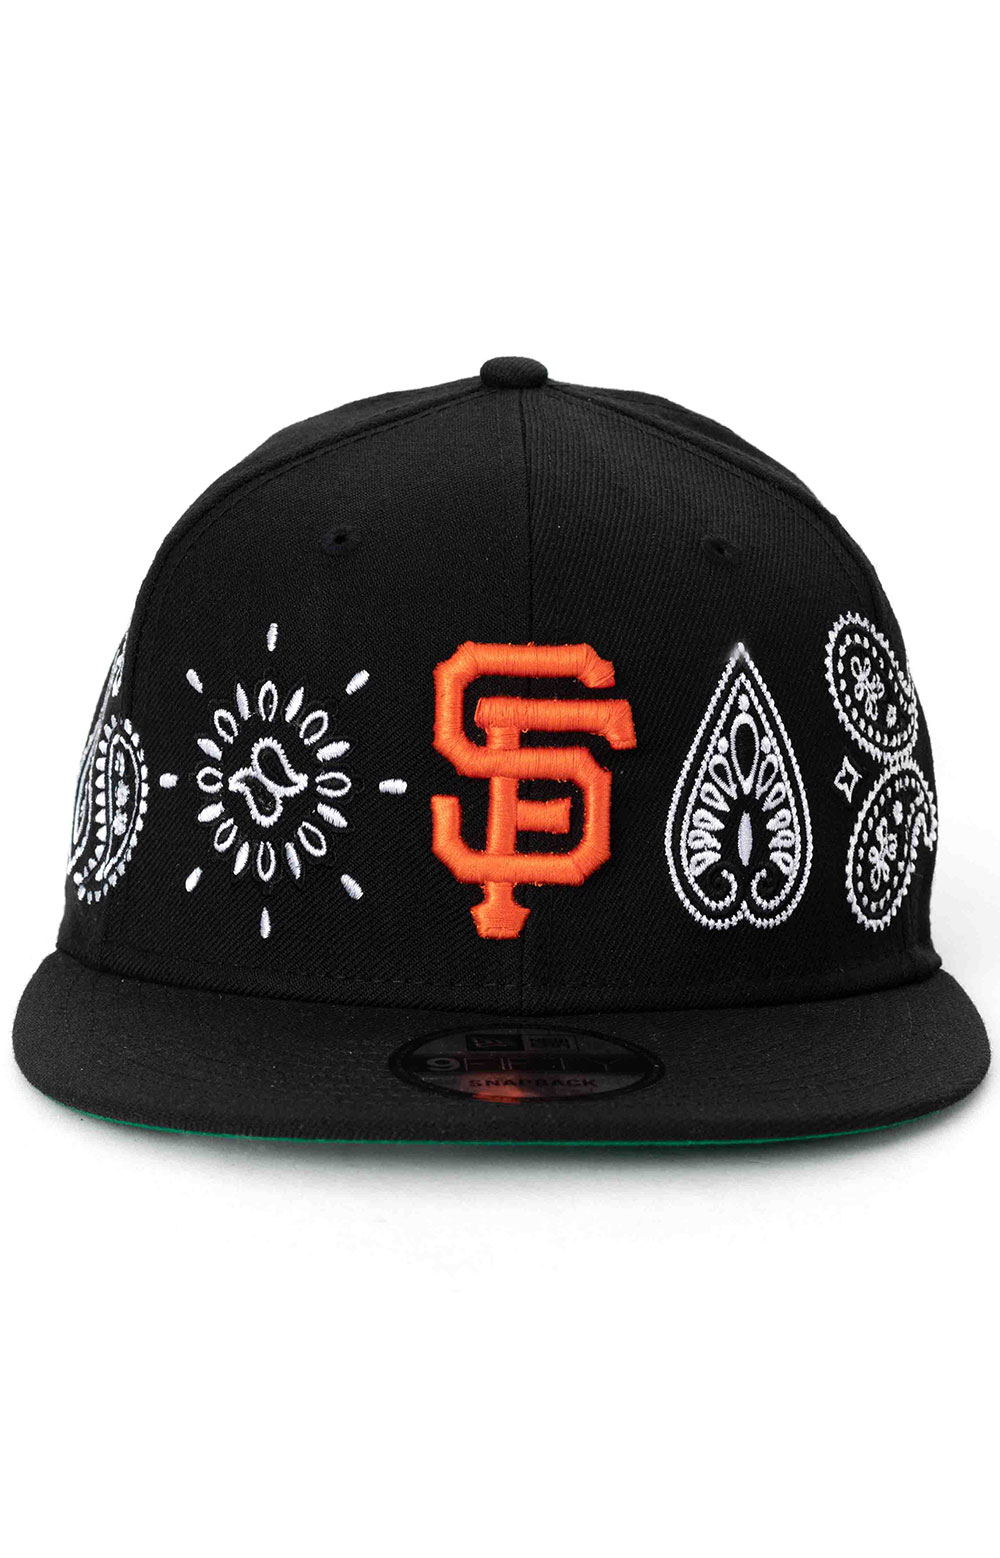 SF Giants Paisley Elements 9Fifty Snap-Back Hat - Black 2